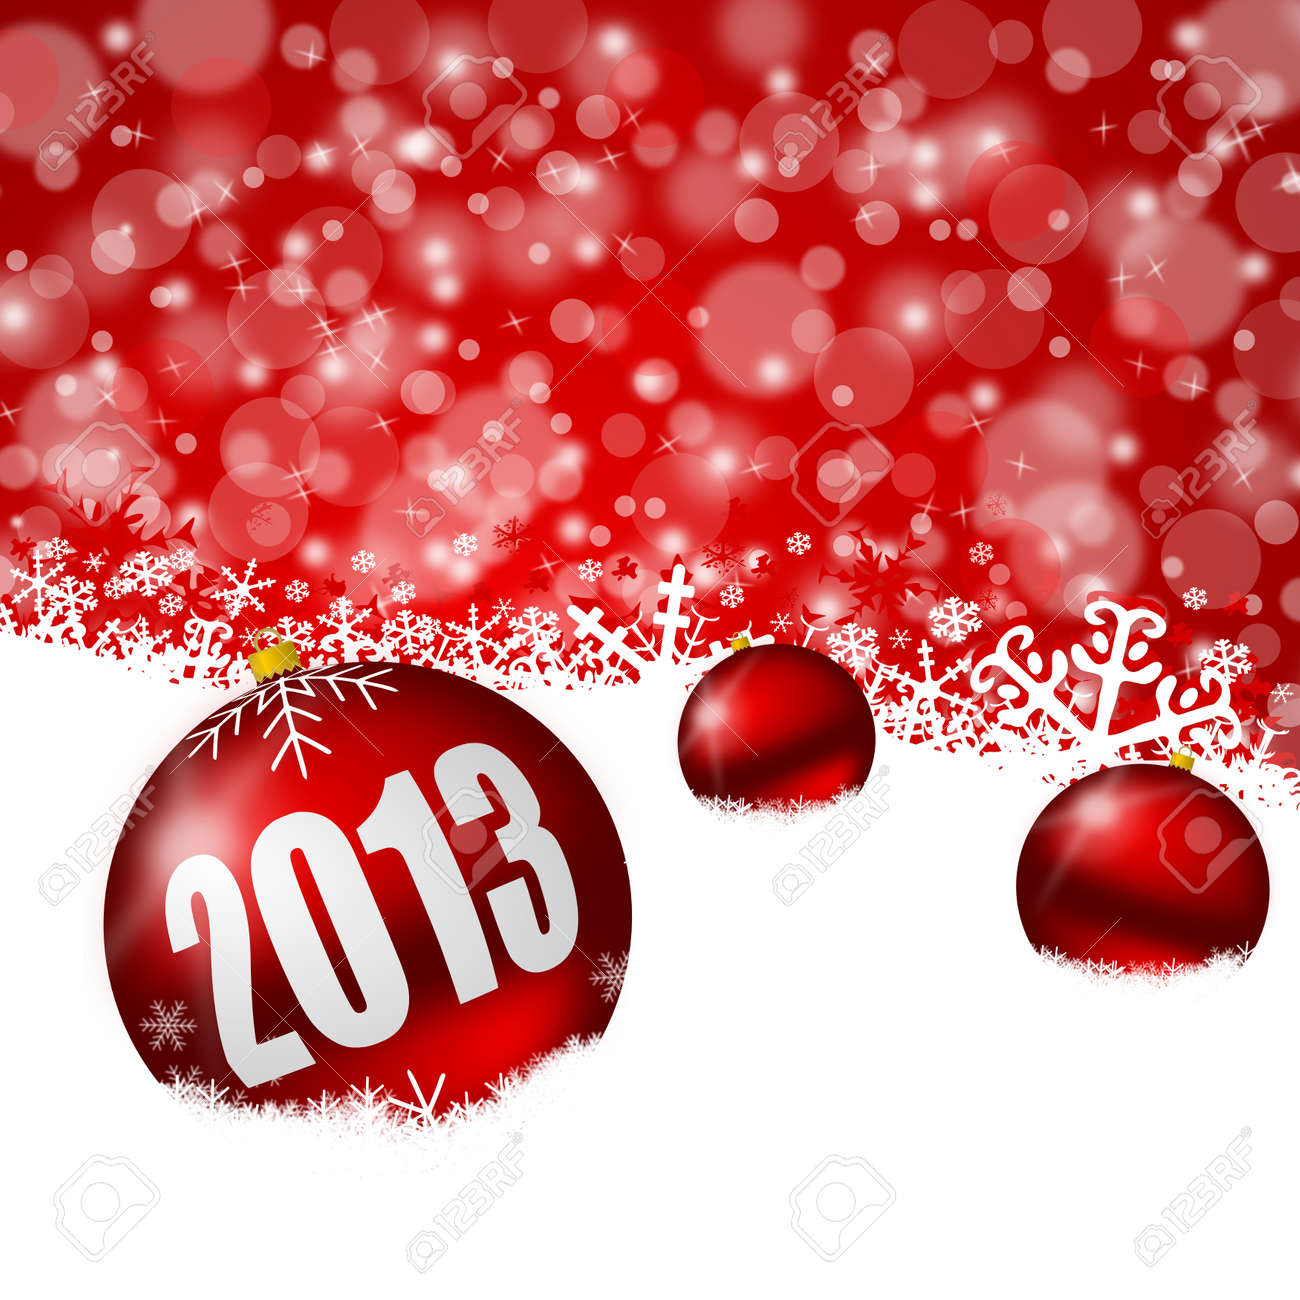 red new years background with snowflakes and christmas balls Stock Photo - 15791127